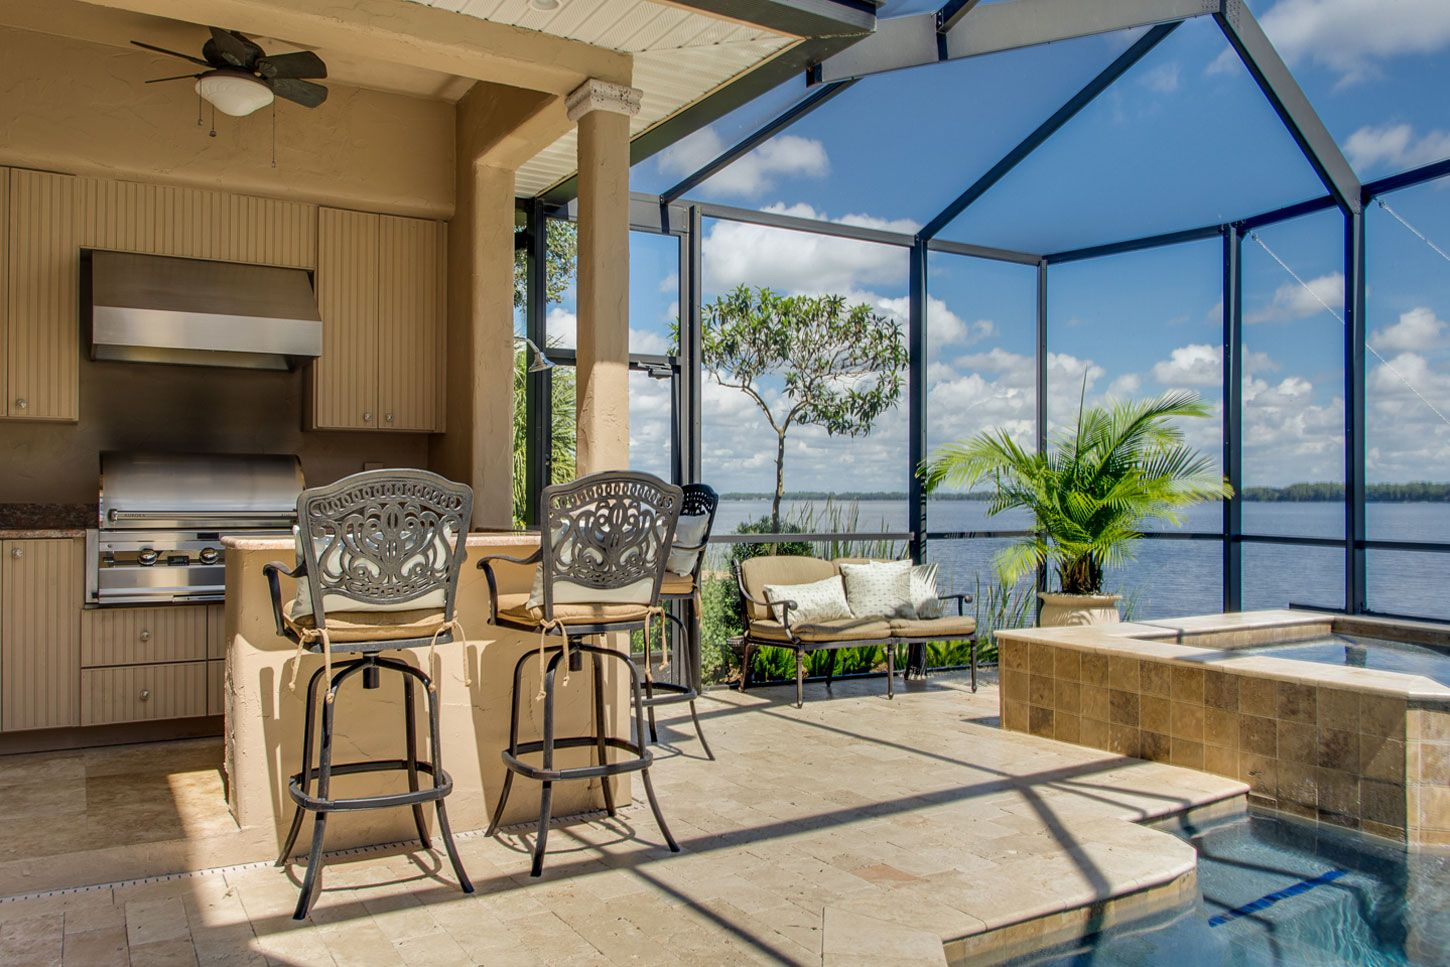 Pin by Homes by Southern Image on Pools & Outside Living ... on Southern Pools And Outdoor Living id=83298